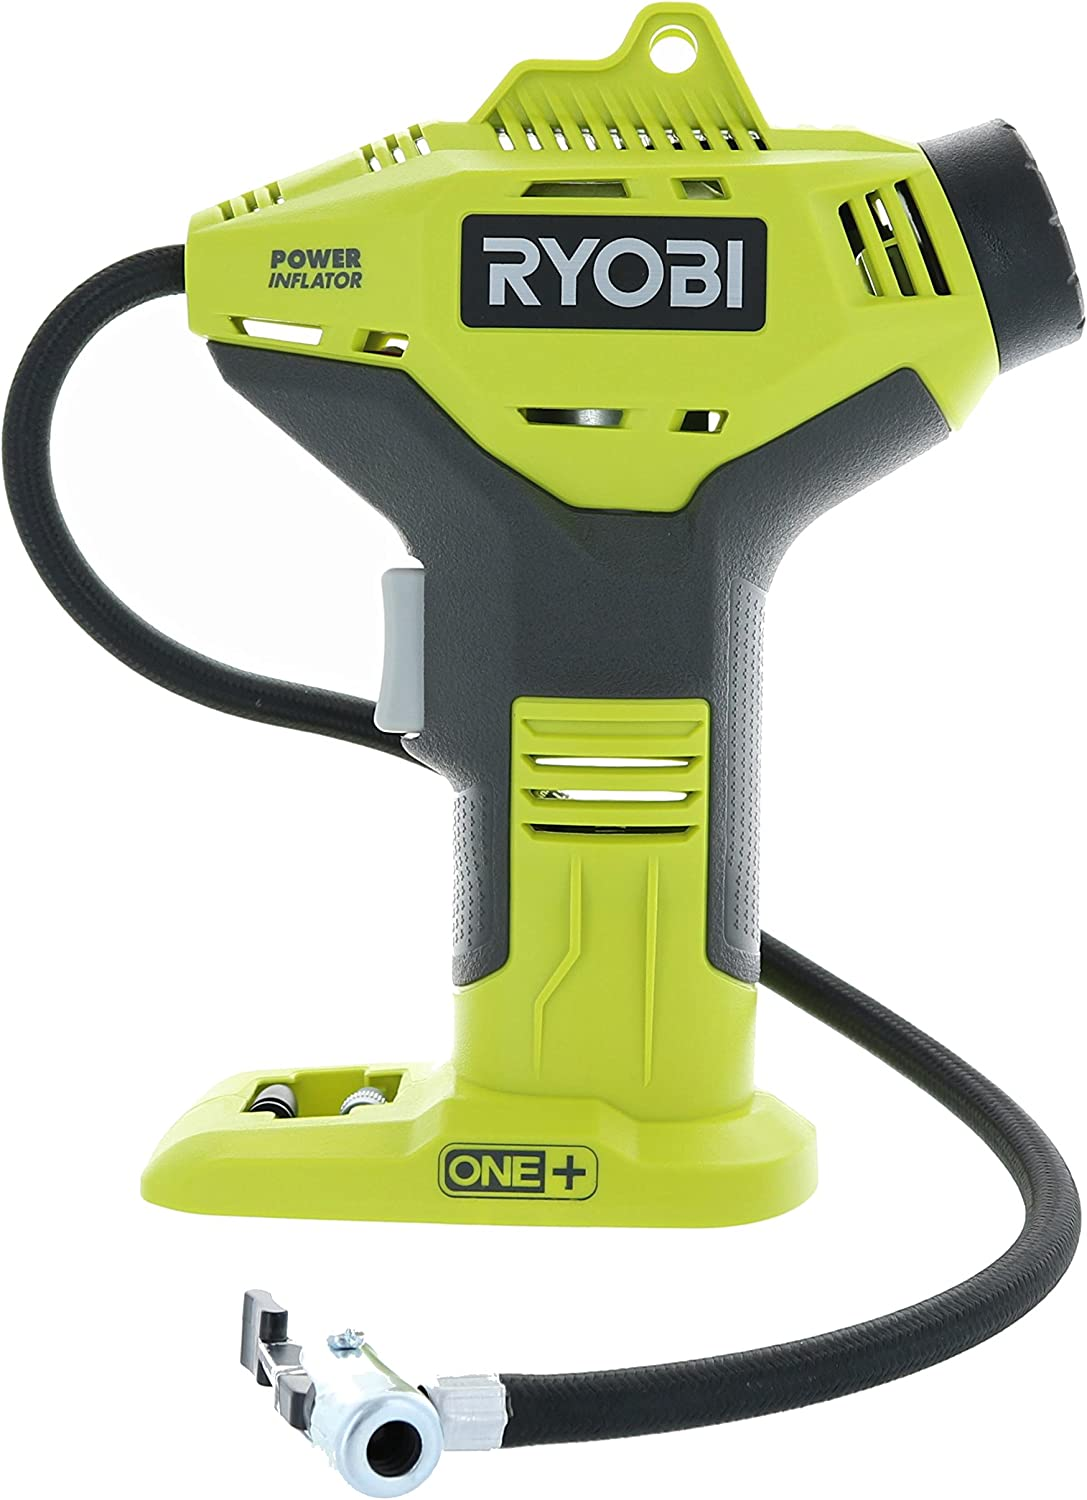 Ryobi P737 18-Volt ONE Portable Cordless Power Inflator for Tires Battery Not Included, Power Tool Only